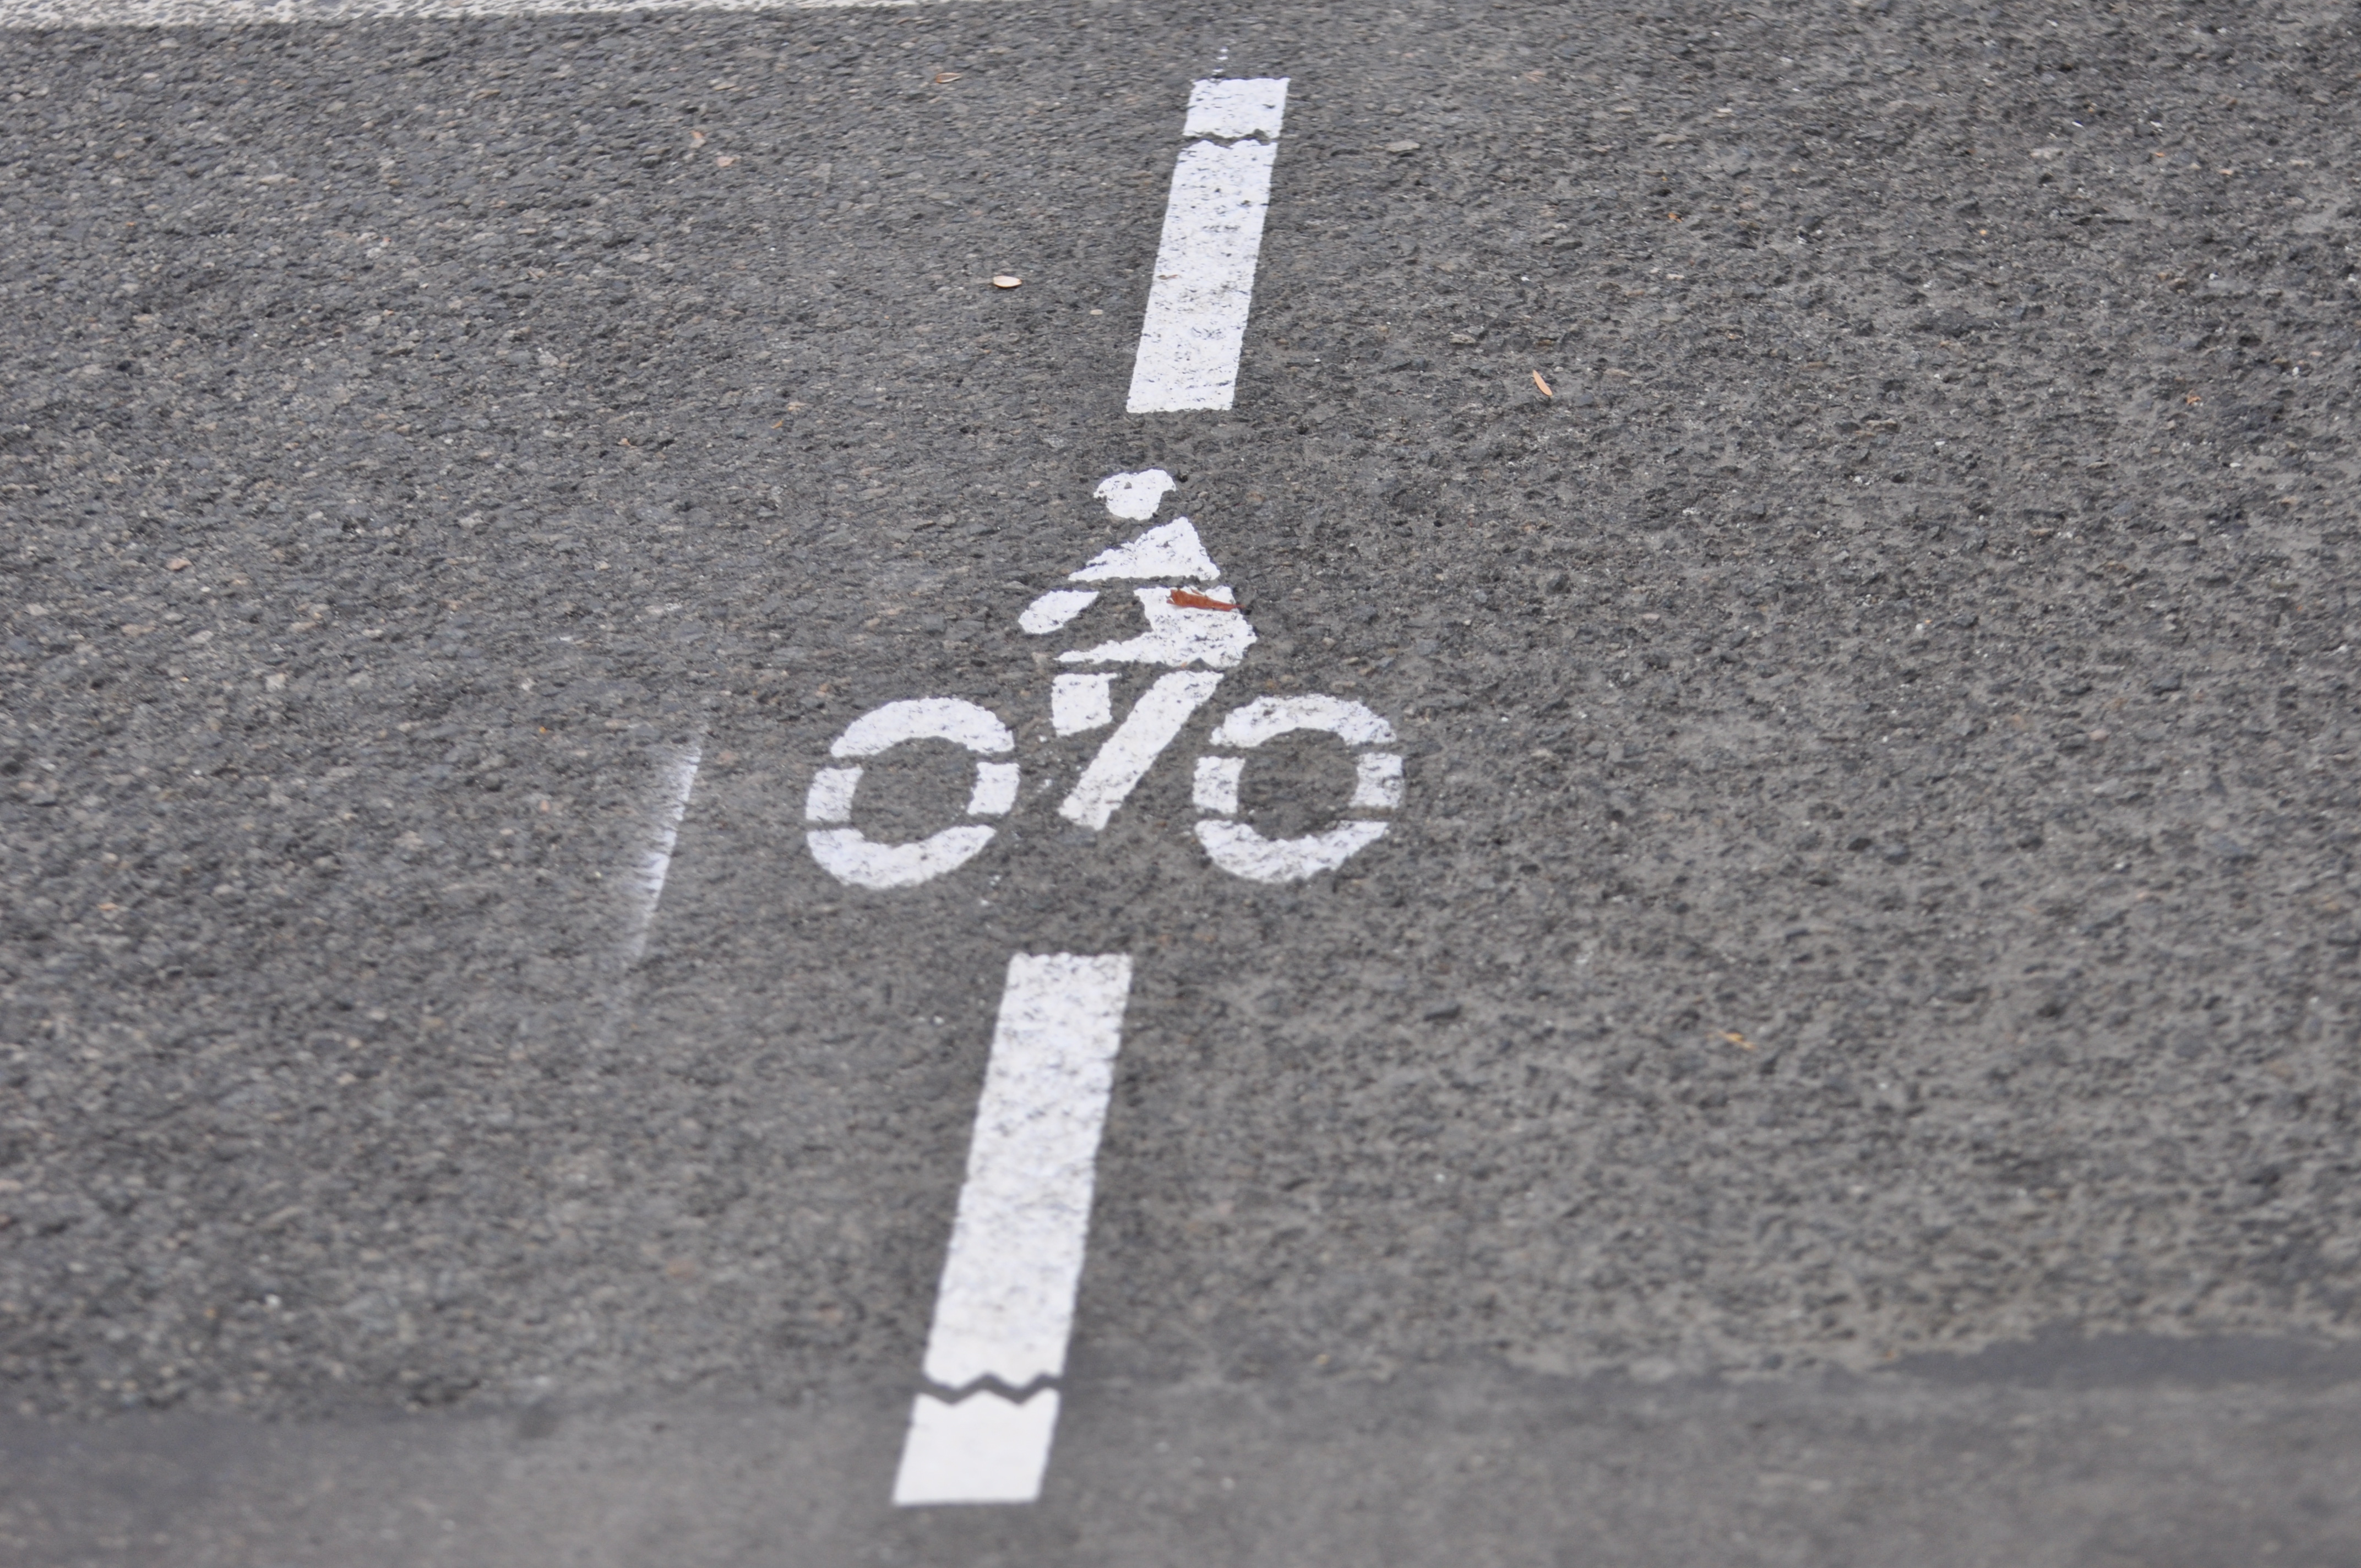 Traffic Signal Bike Detection